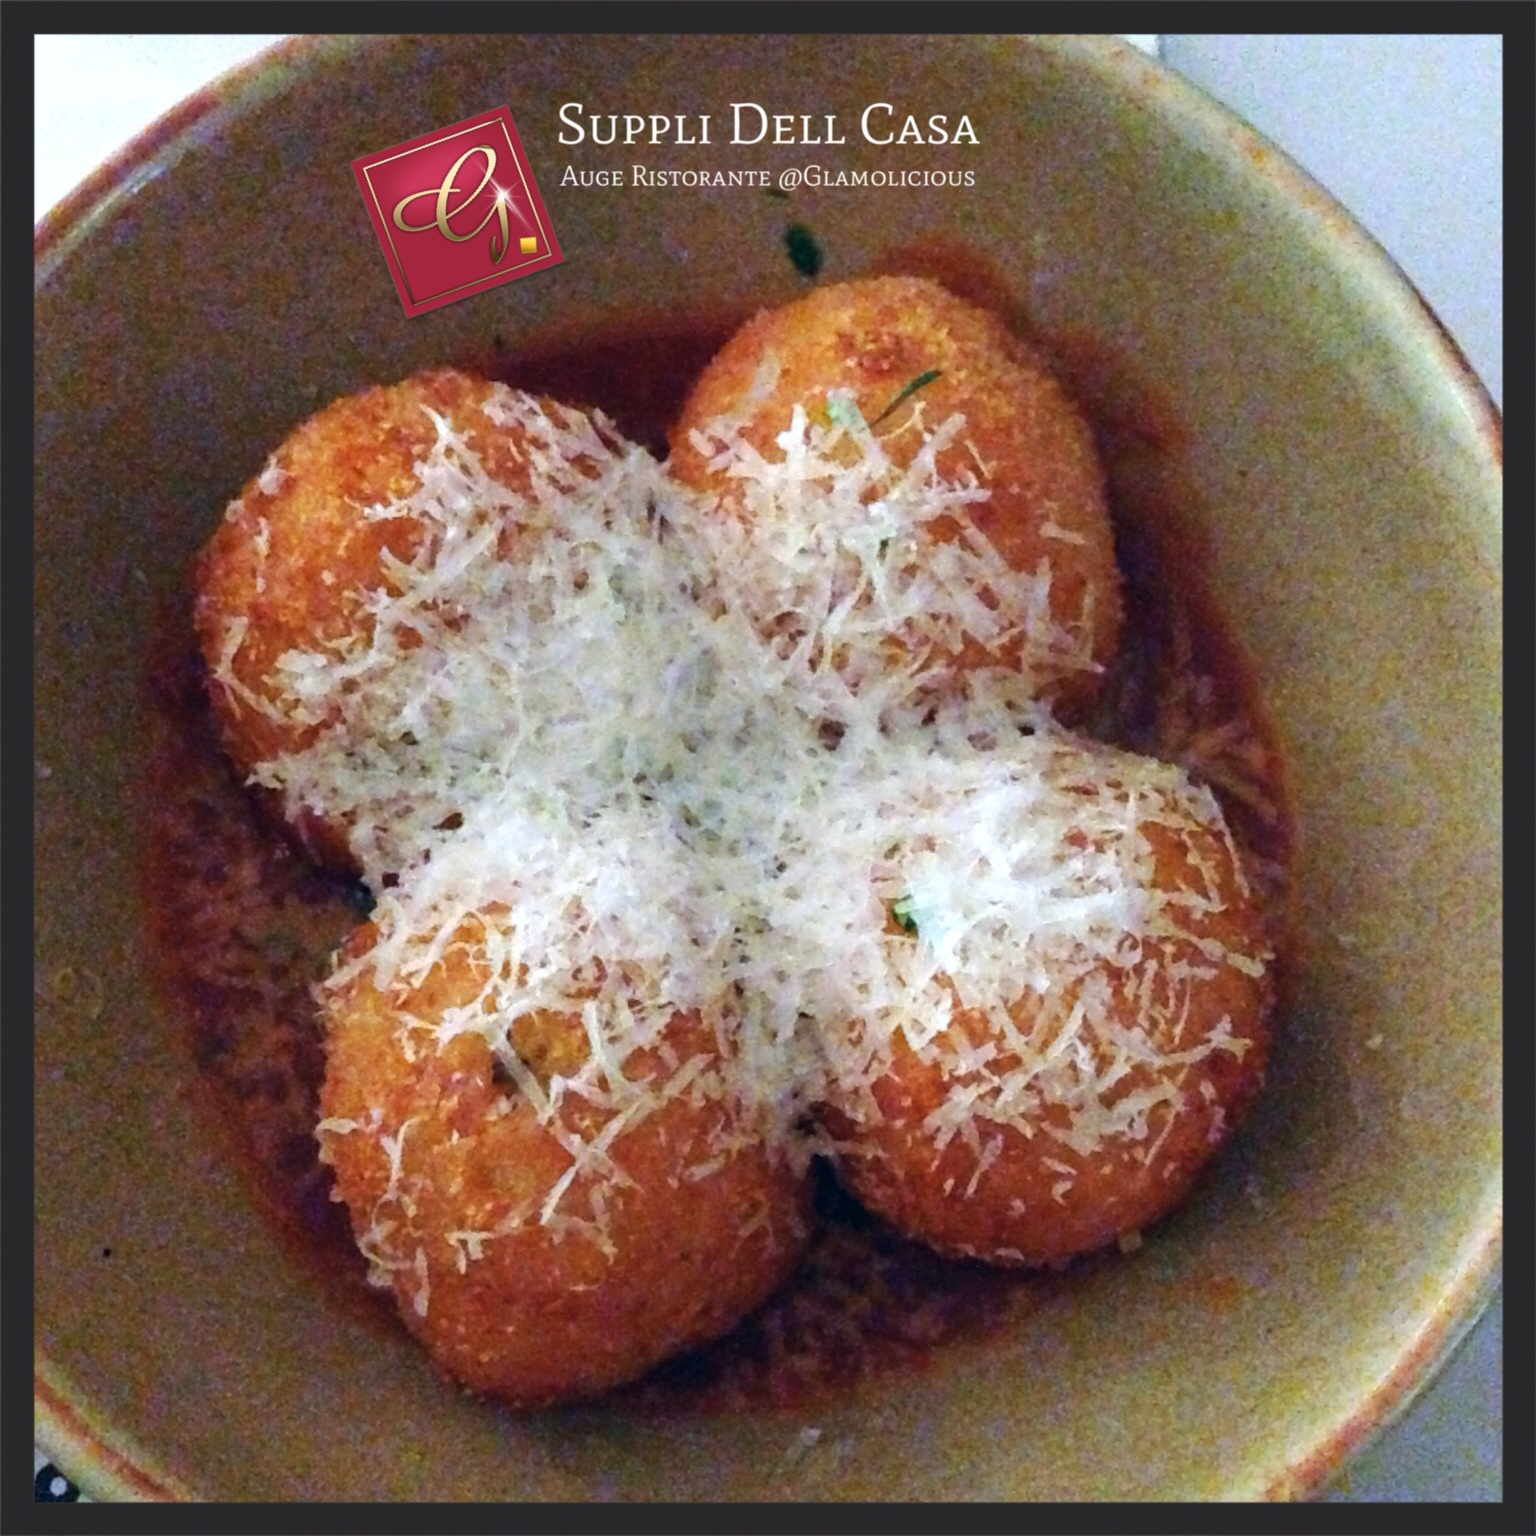 Suppli Dell Casa by Auge Ristorante